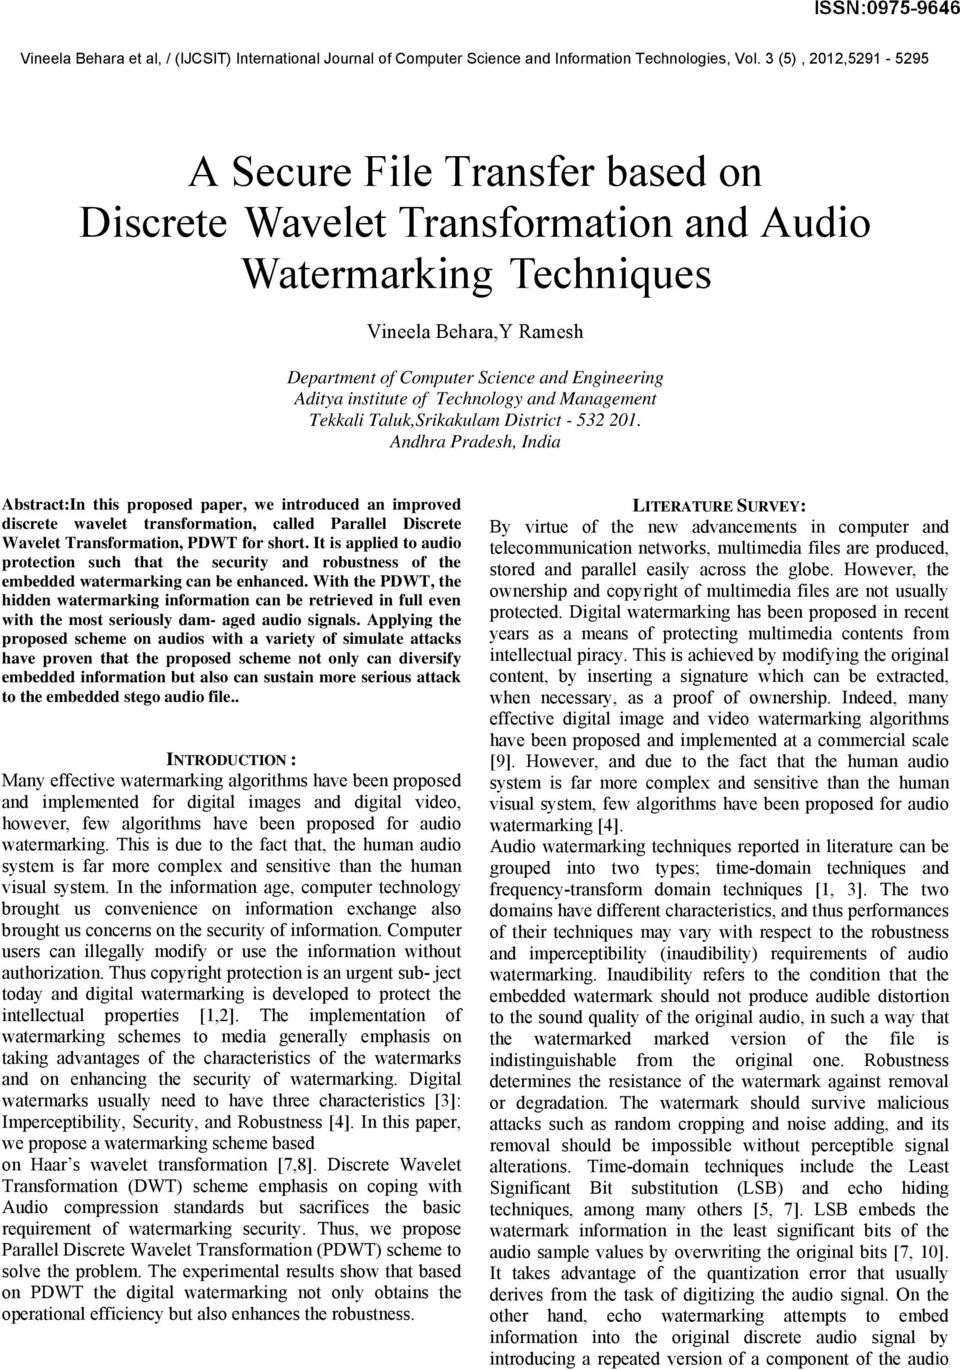 Andhra Pradesh, India Abstract:In this proposed paper, we introduced an improved discrete wavelet transformation, called Parallel Discrete Wavelet Transformation, PDWT for short.